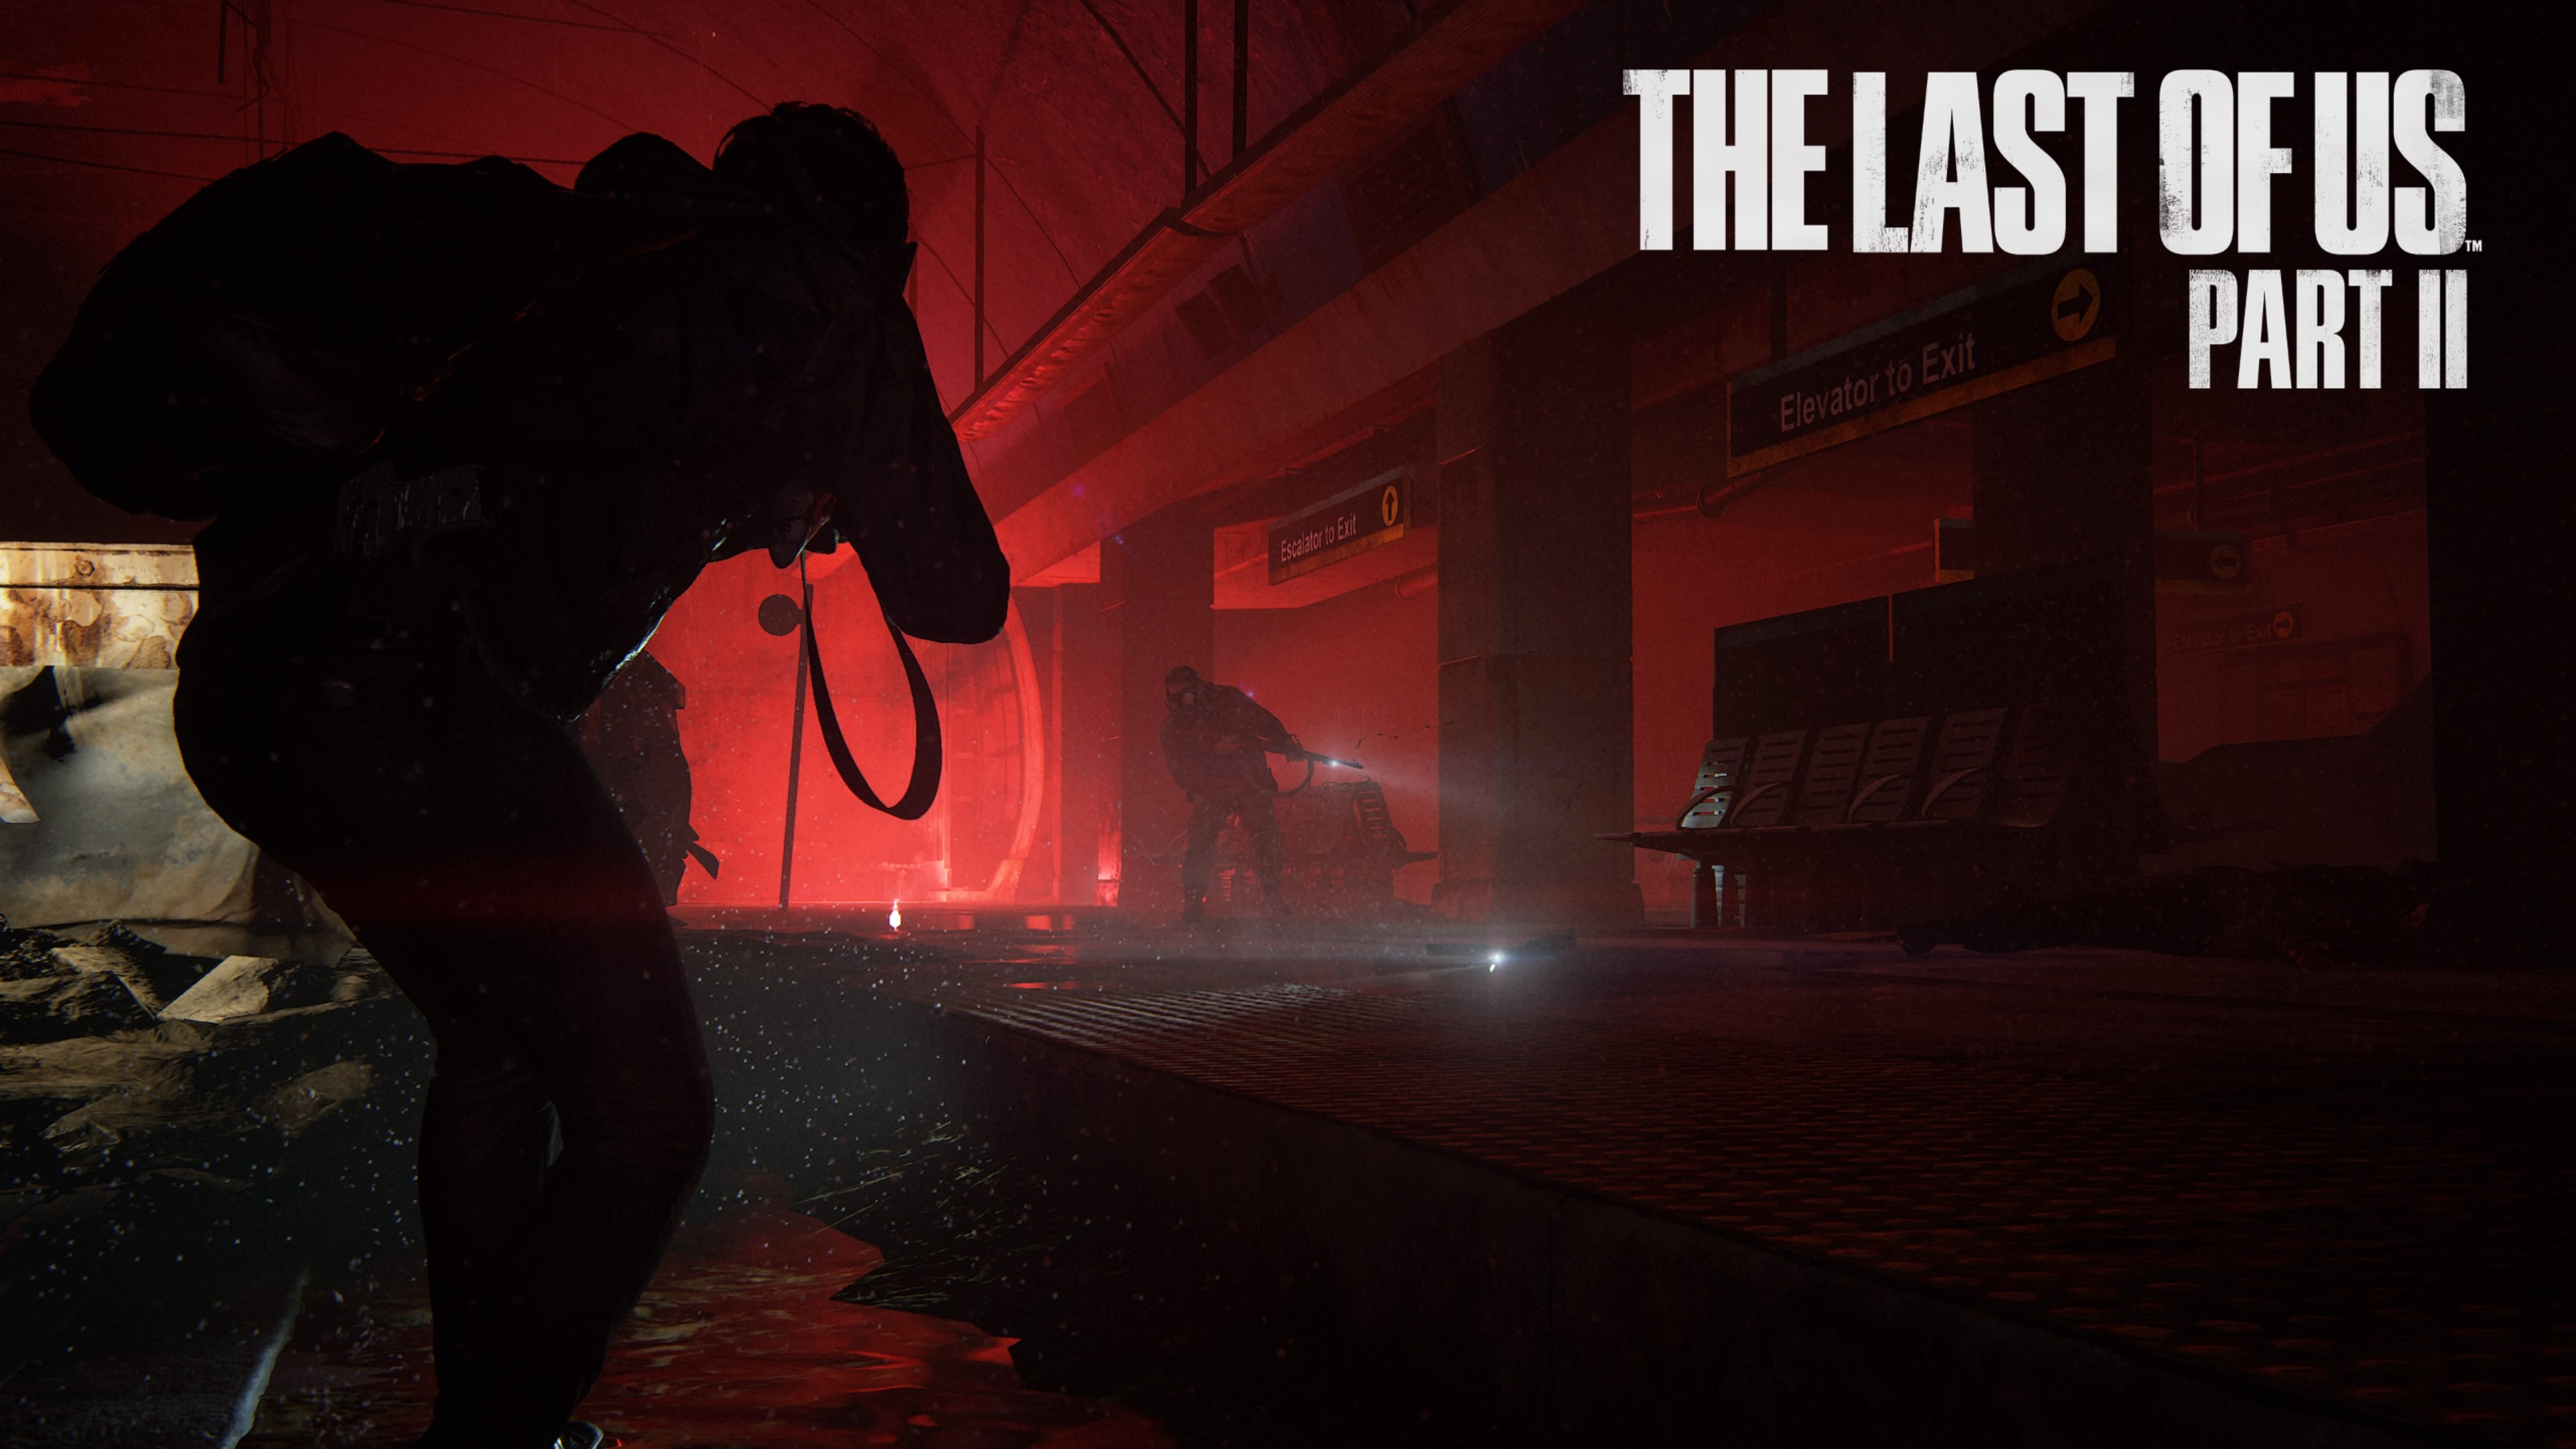 The Last of Us Part II was my Favourite Worst Game of 2020